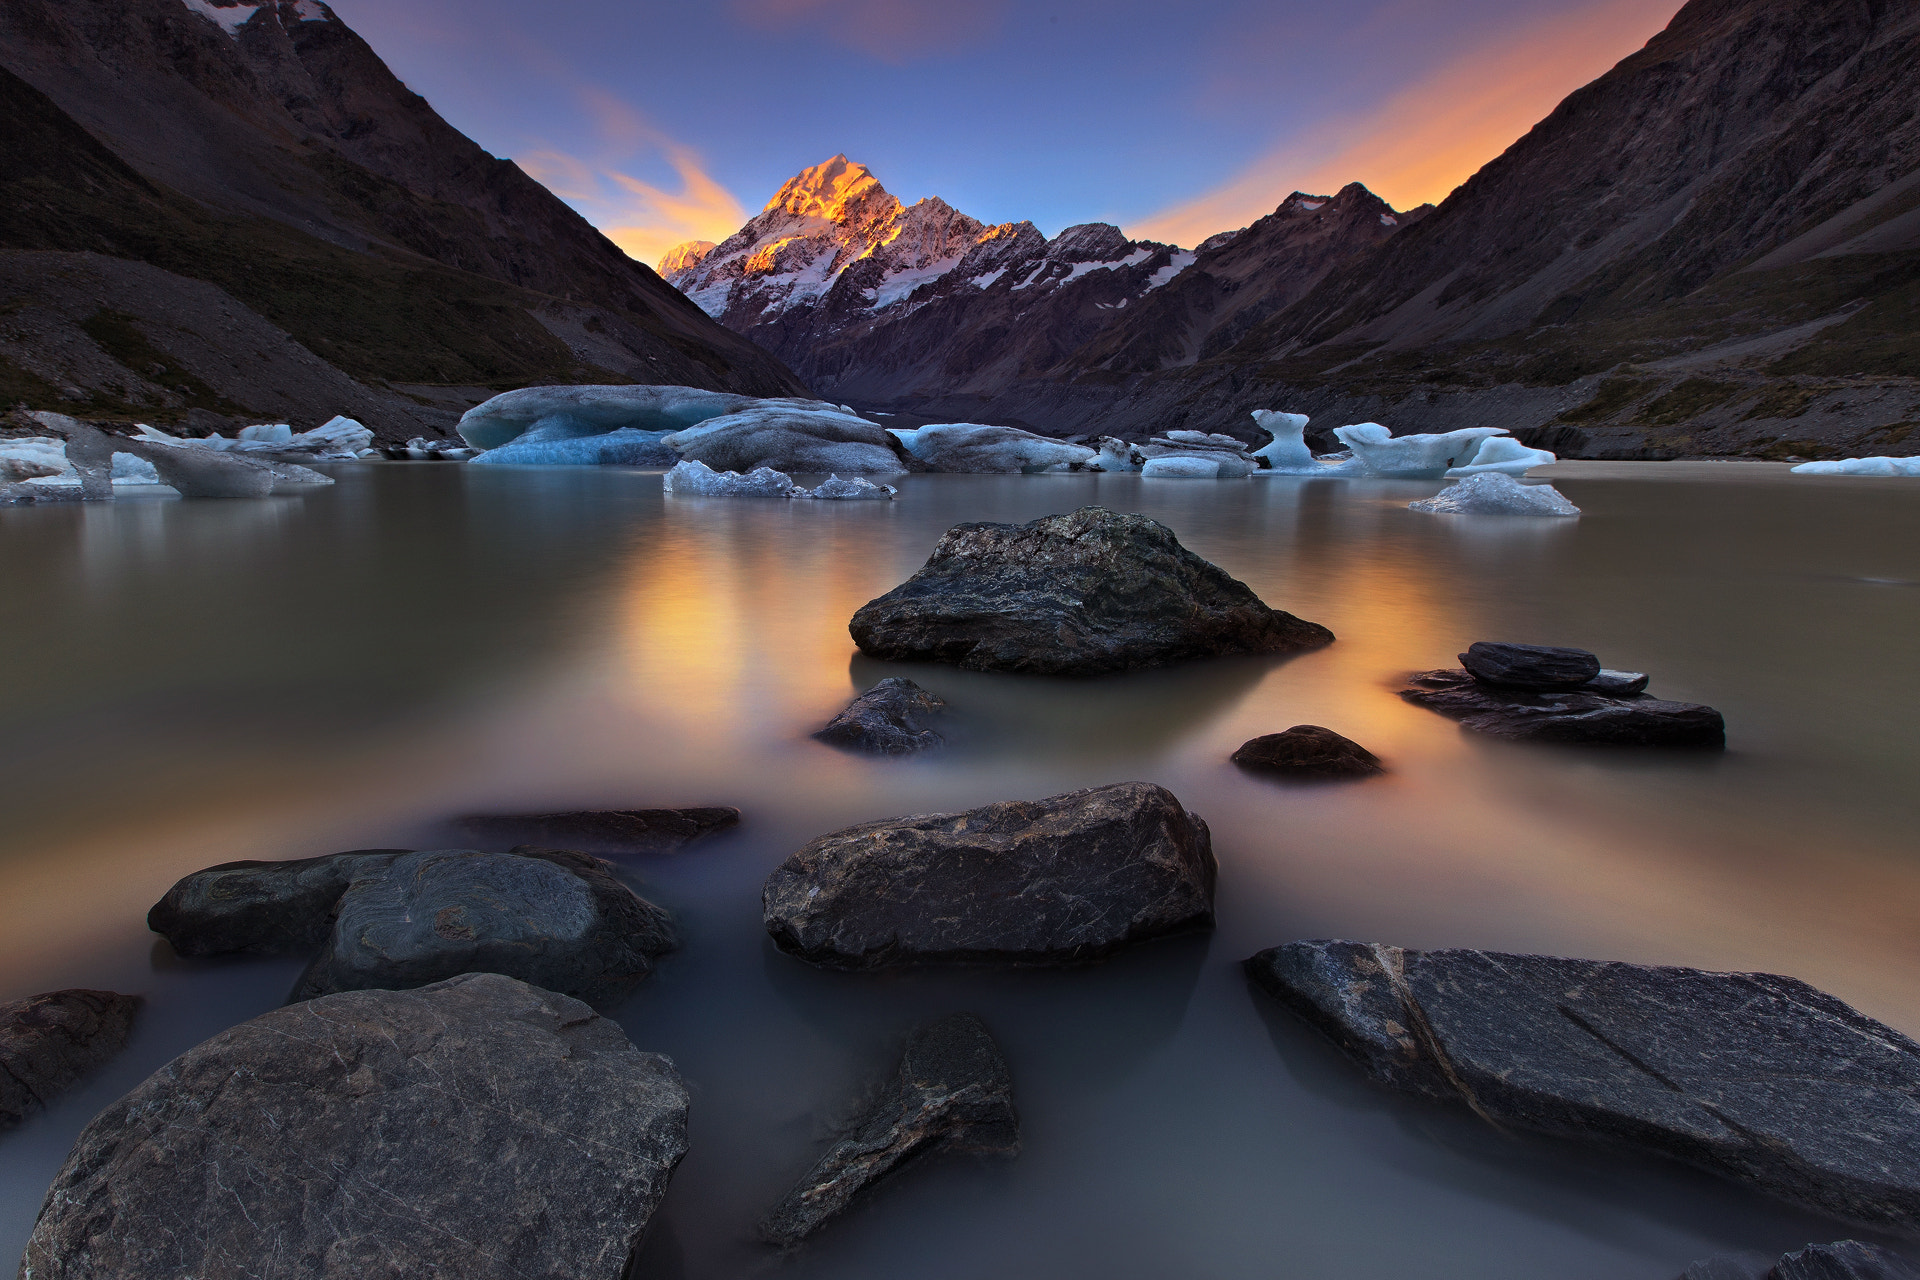 Photograph Step by Step by Christian Lim on 500px